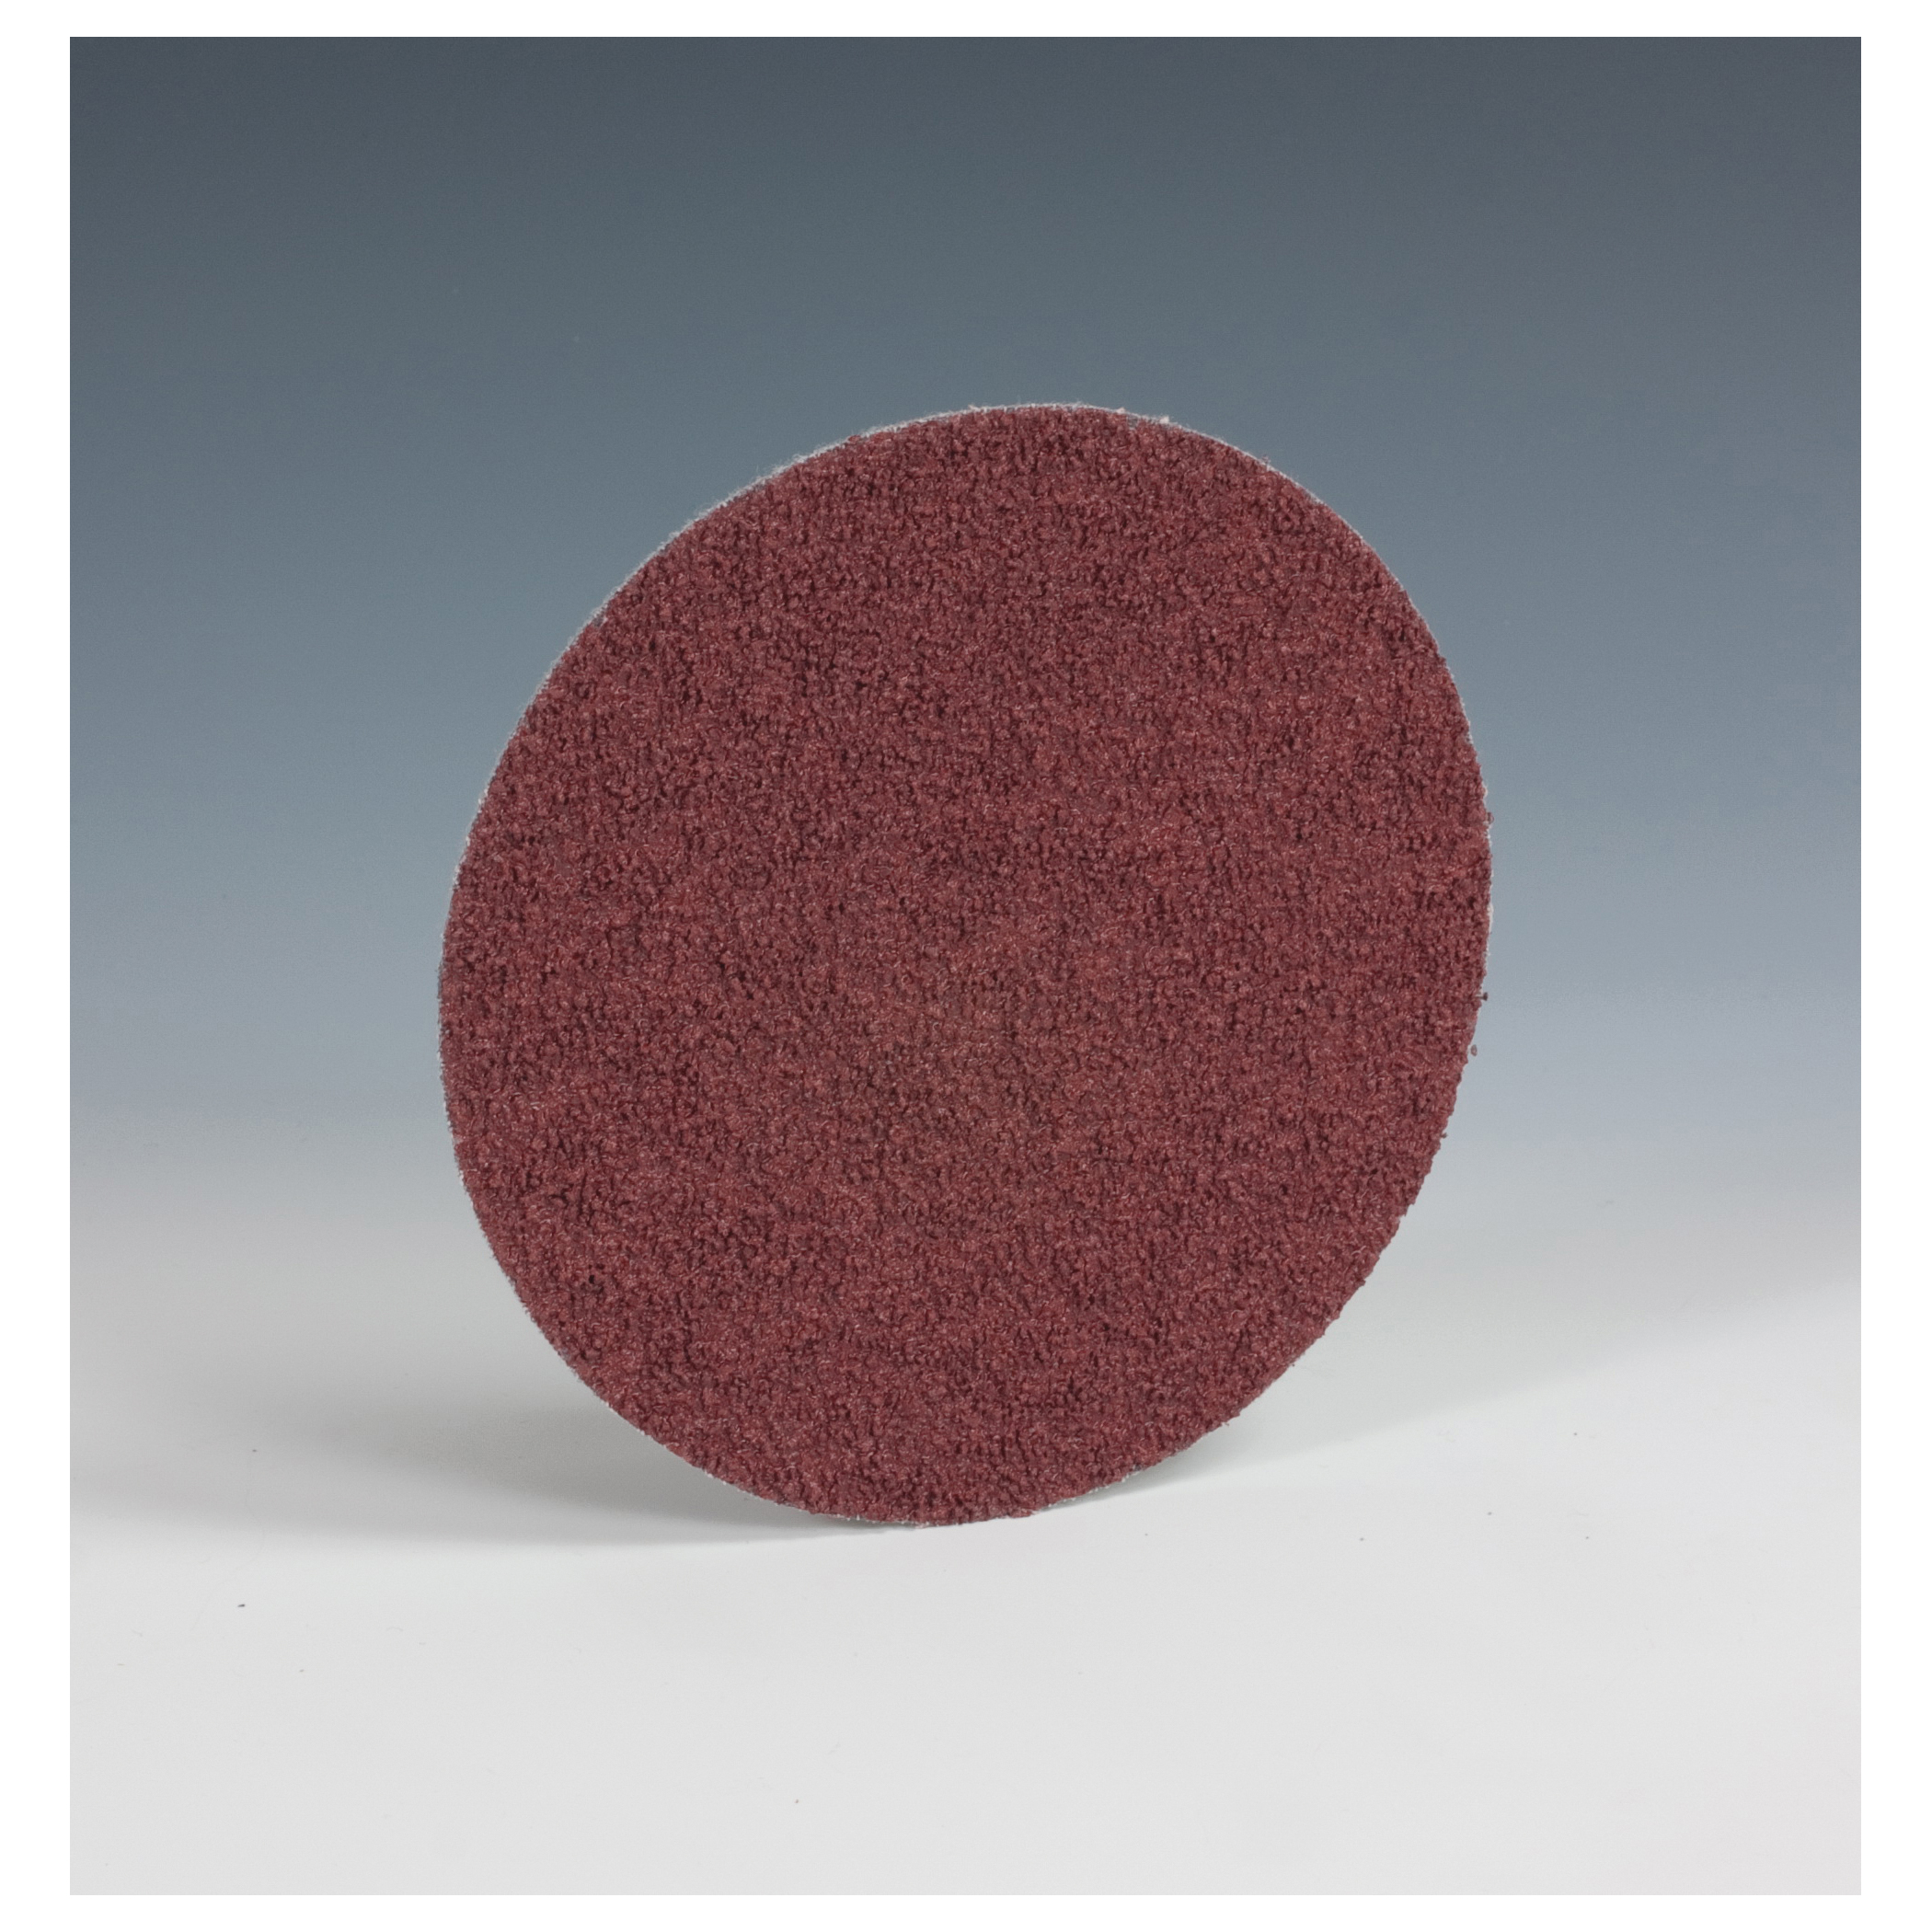 3M™ Hookit™ 051144-13791 359F Coated Abrasive Disc, 7 in Dia Disc, P180 Grit, Very Fine Grade, Aluminum Oxide Abrasive, Polyester Backing